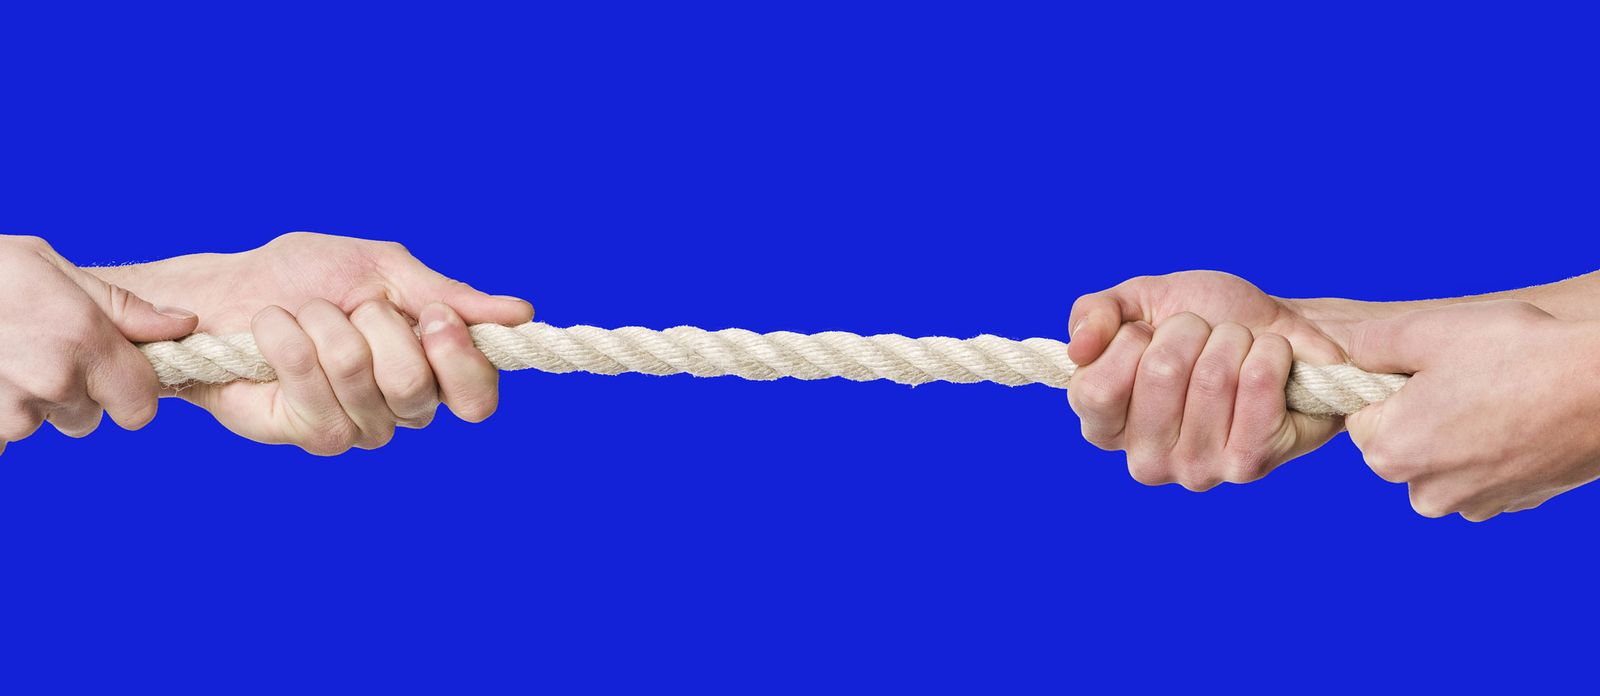 Tug of war. Win a Bidding War: How to Prepare and Get the House You Want.